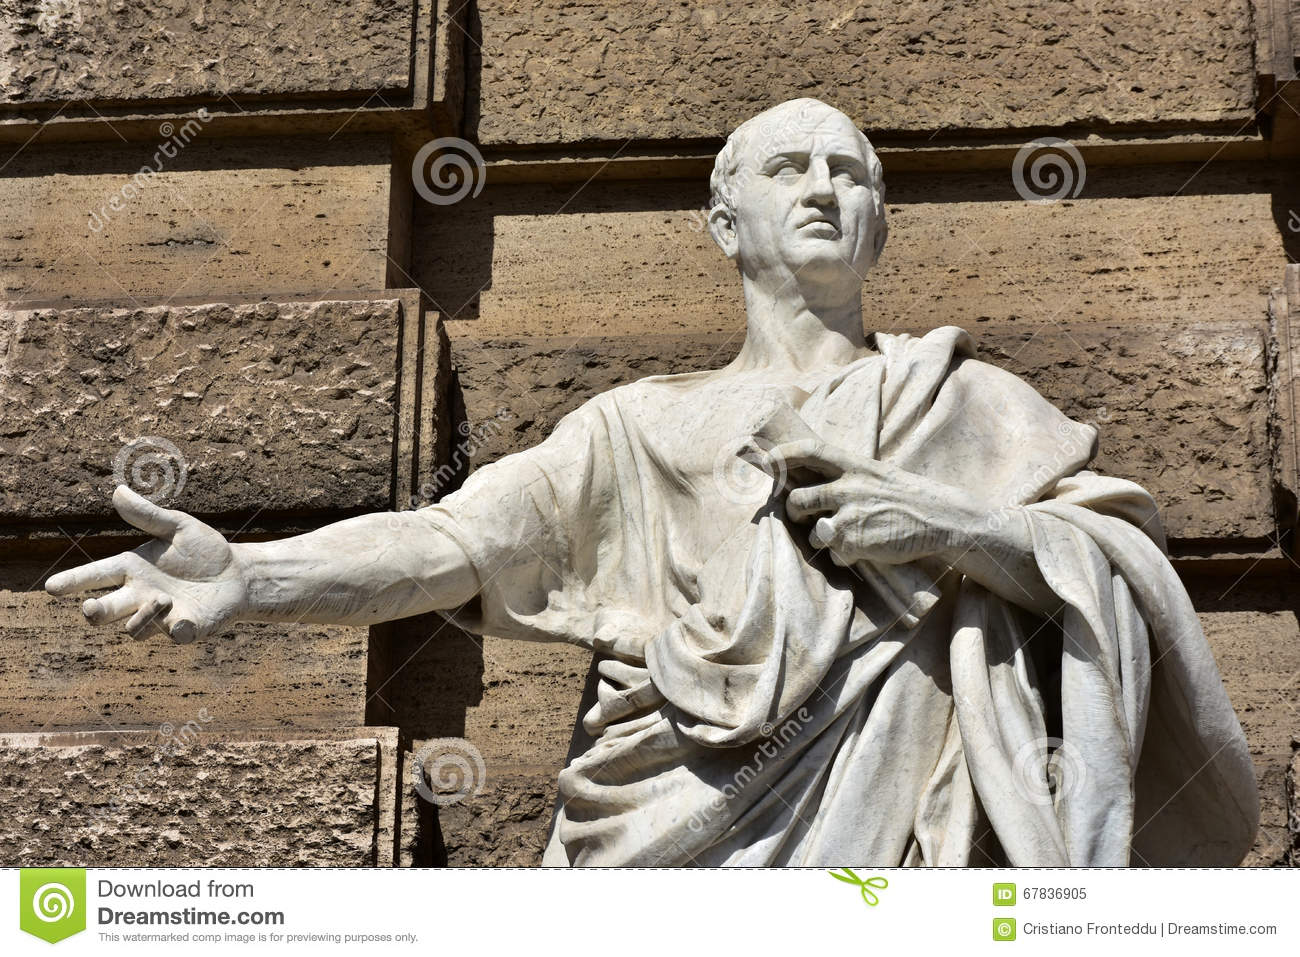 a biography of cicero a famous roman orator Greek philosophy and rhetoric moved fully into latin for the first time in the speeches, letters and dialogues of cicero (106-43 bc), the greatest orator of the late roman republic a brilliant .